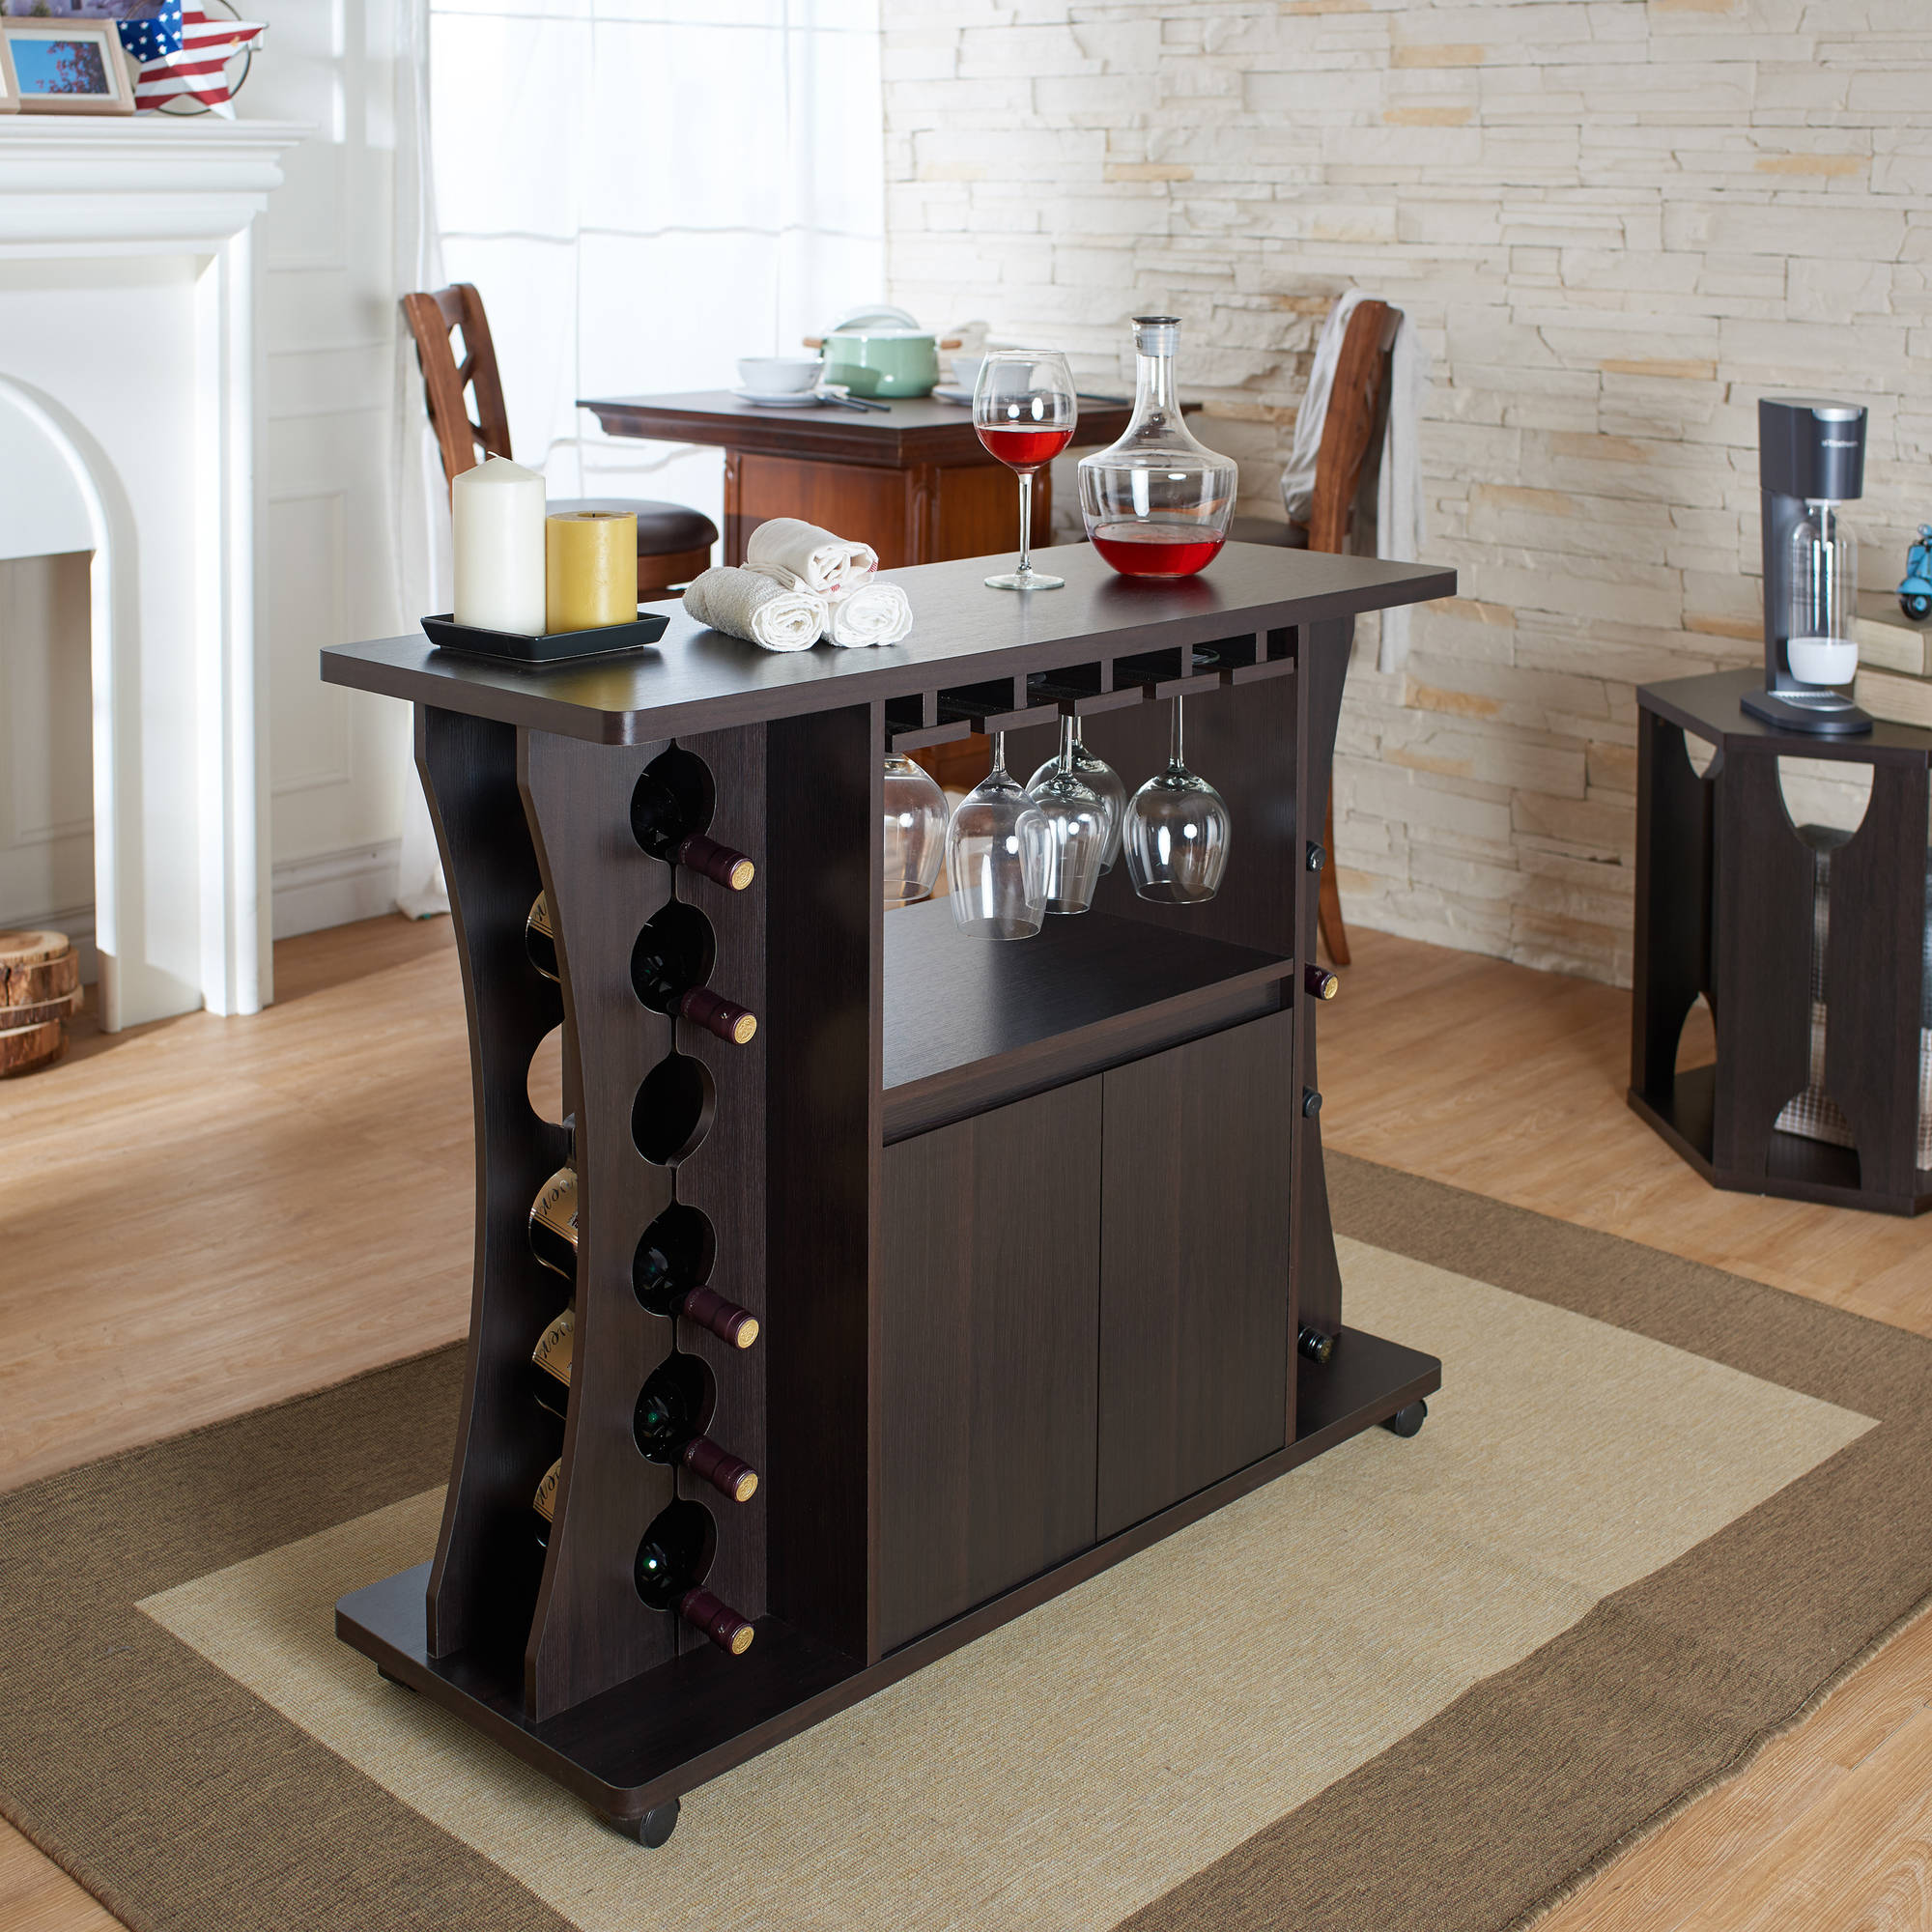 Furniture of America Alton Modern Multi-Storage Buffet, Espresso by Furniture of America